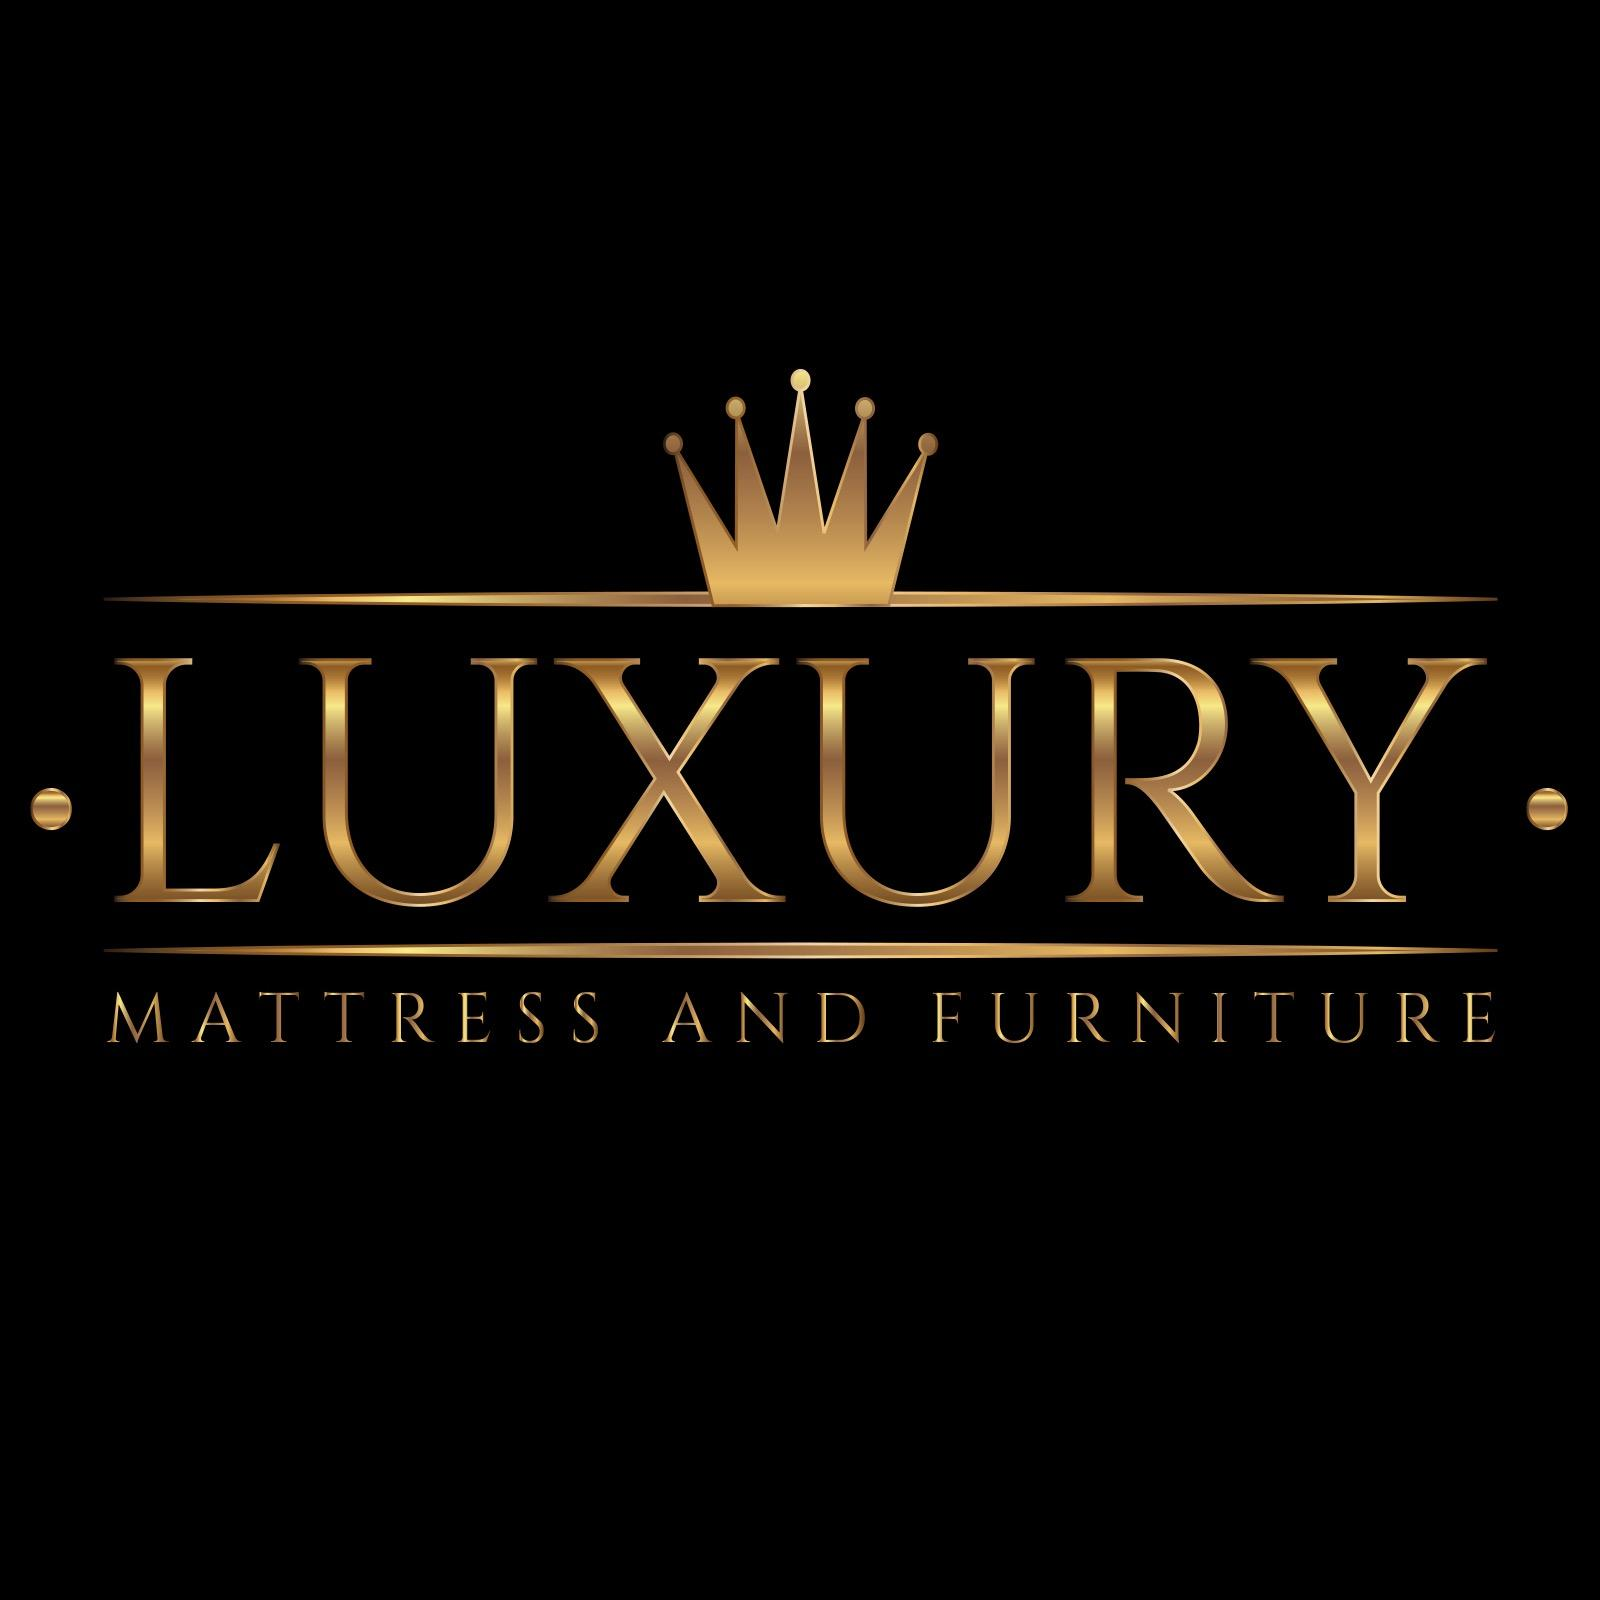 Luxury Mattress and Furniture - Valparaiso, IN 46383 - (219)895-1196 | ShowMeLocal.com